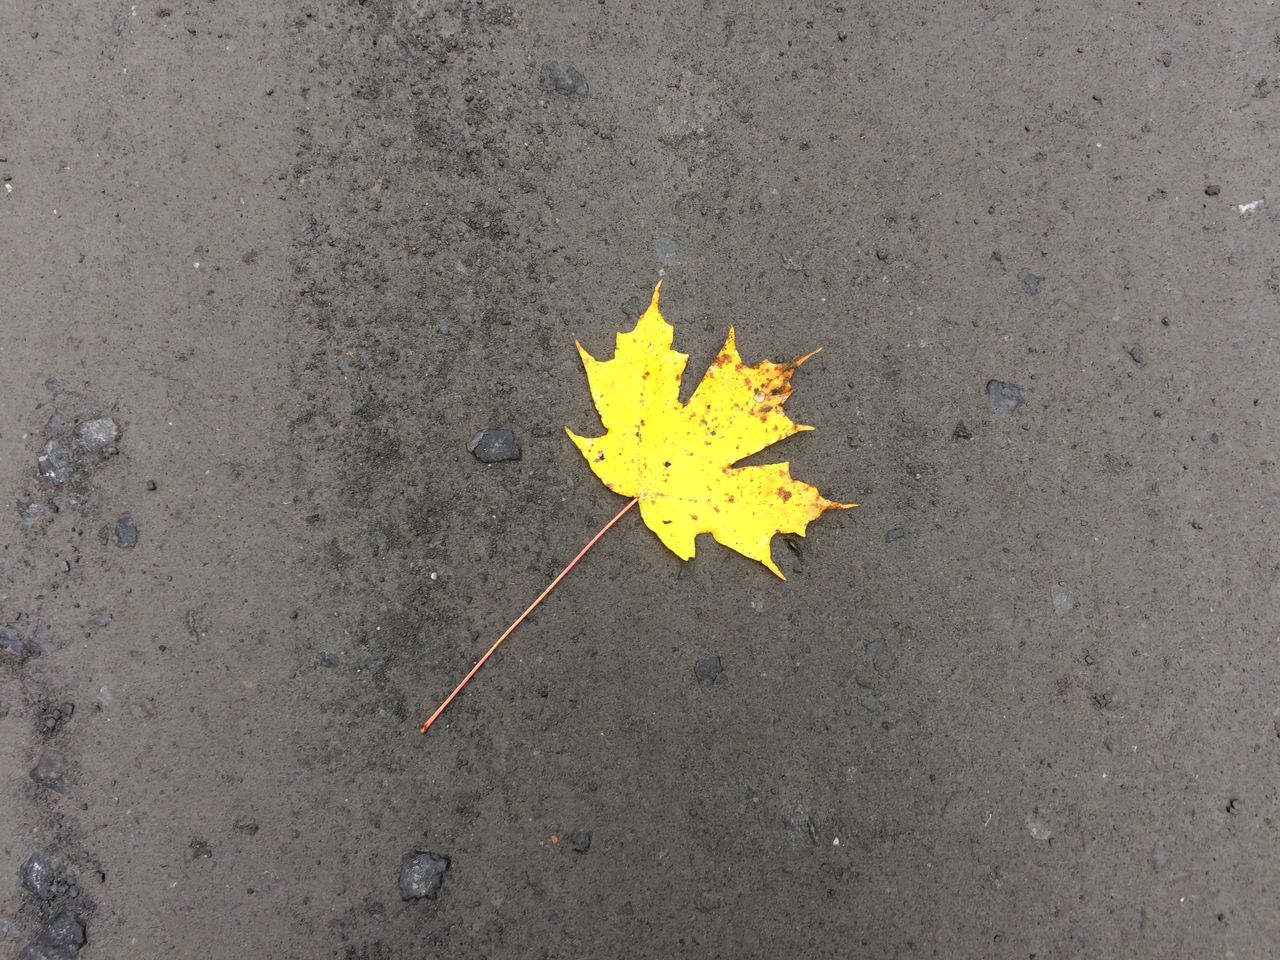 High angle view of fallen yellow maple leaf on footpath